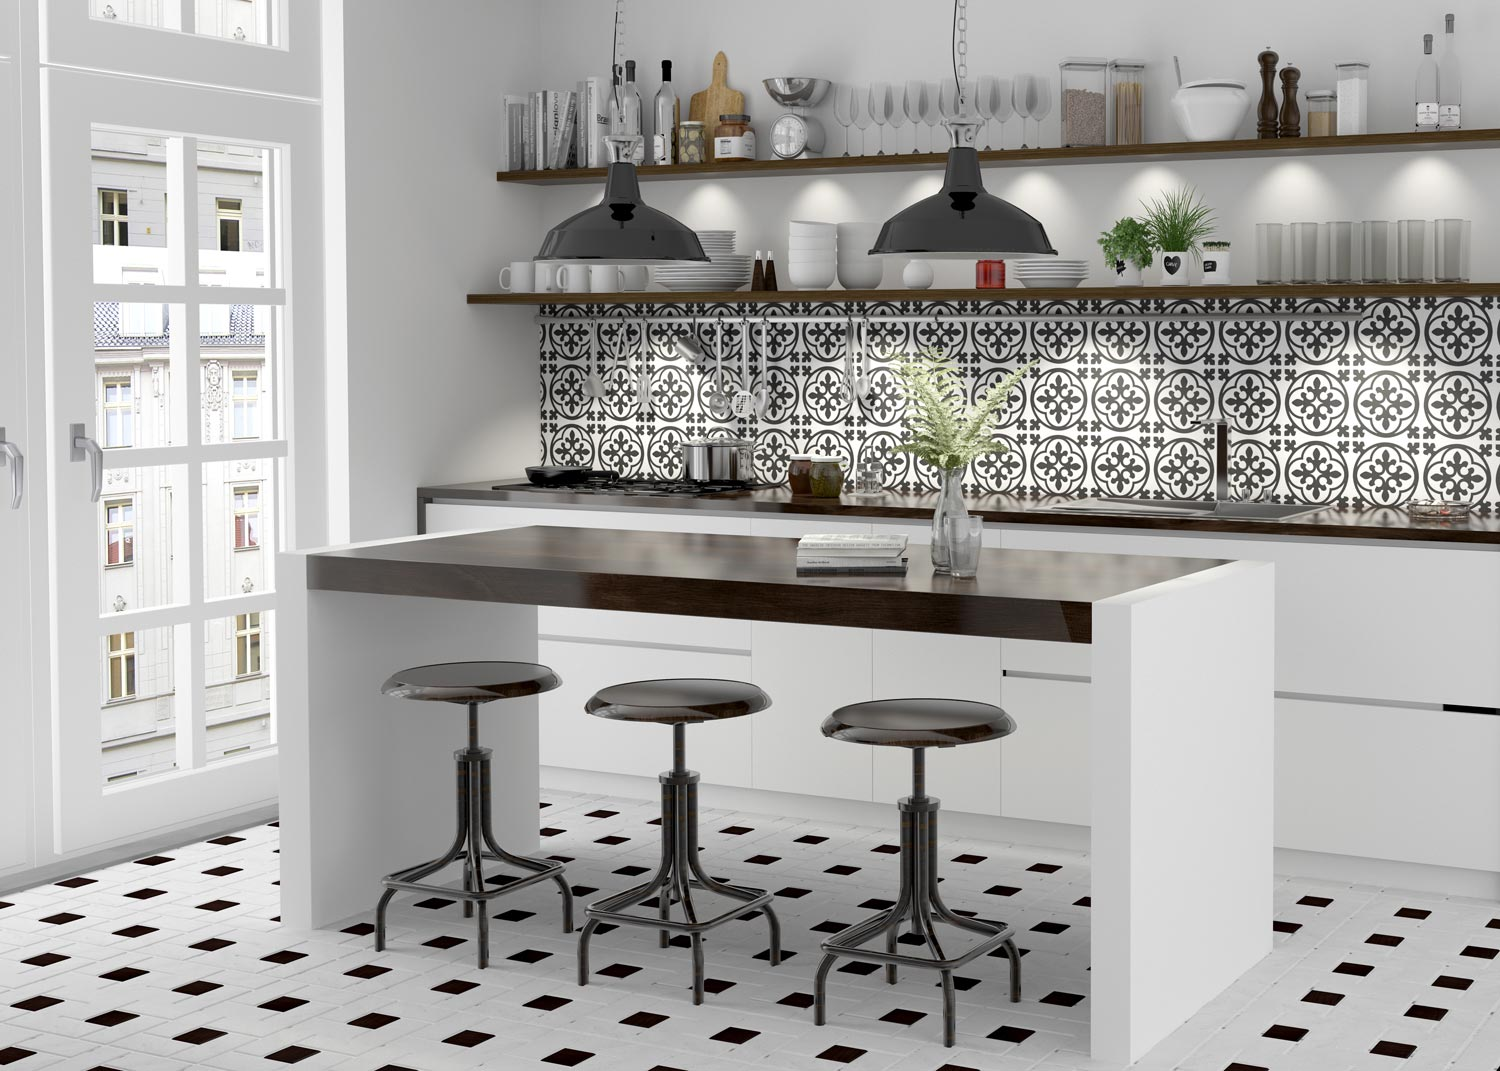 moroccan-tiles-kitchen-backsplash-designs